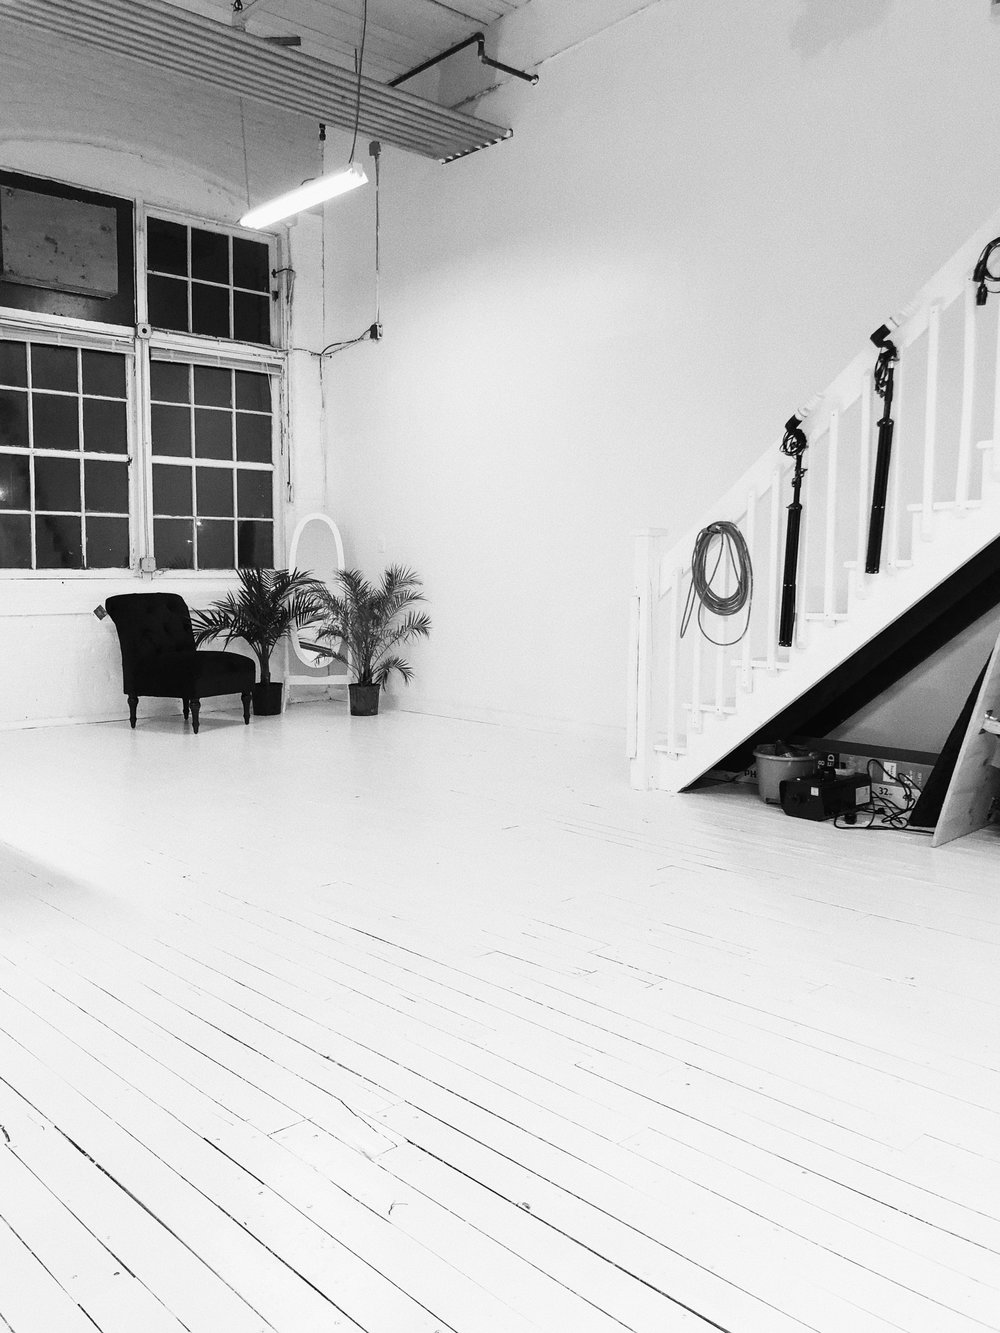 Feature 2 - White wood floor, 25 ft. ceilings with industrial windows.